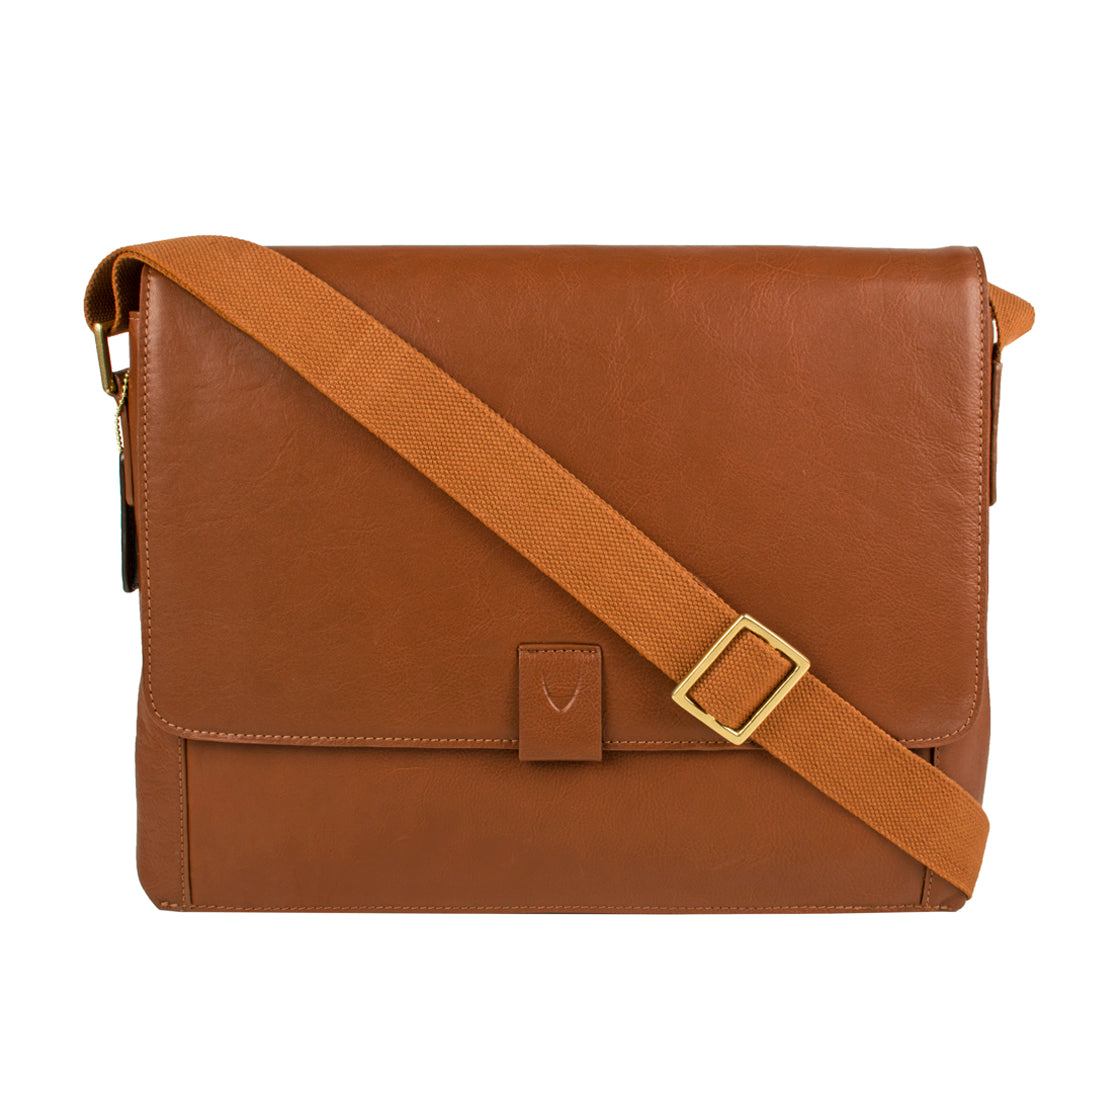 AIDEN 01 MESSENGER BAG